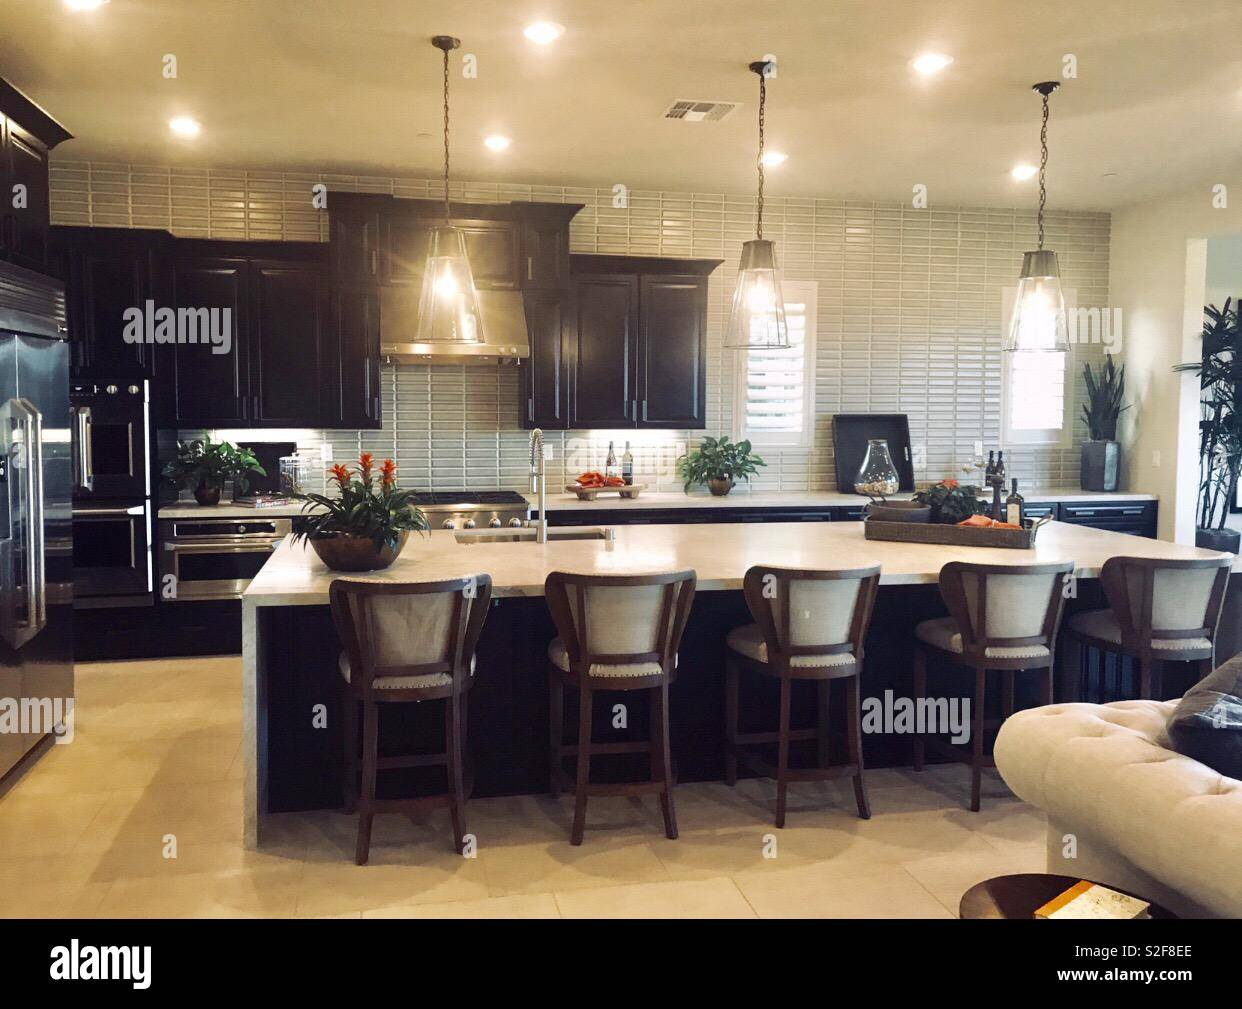 Beautiful Homes In Usa America Lovely Kitchen With Bright Lights